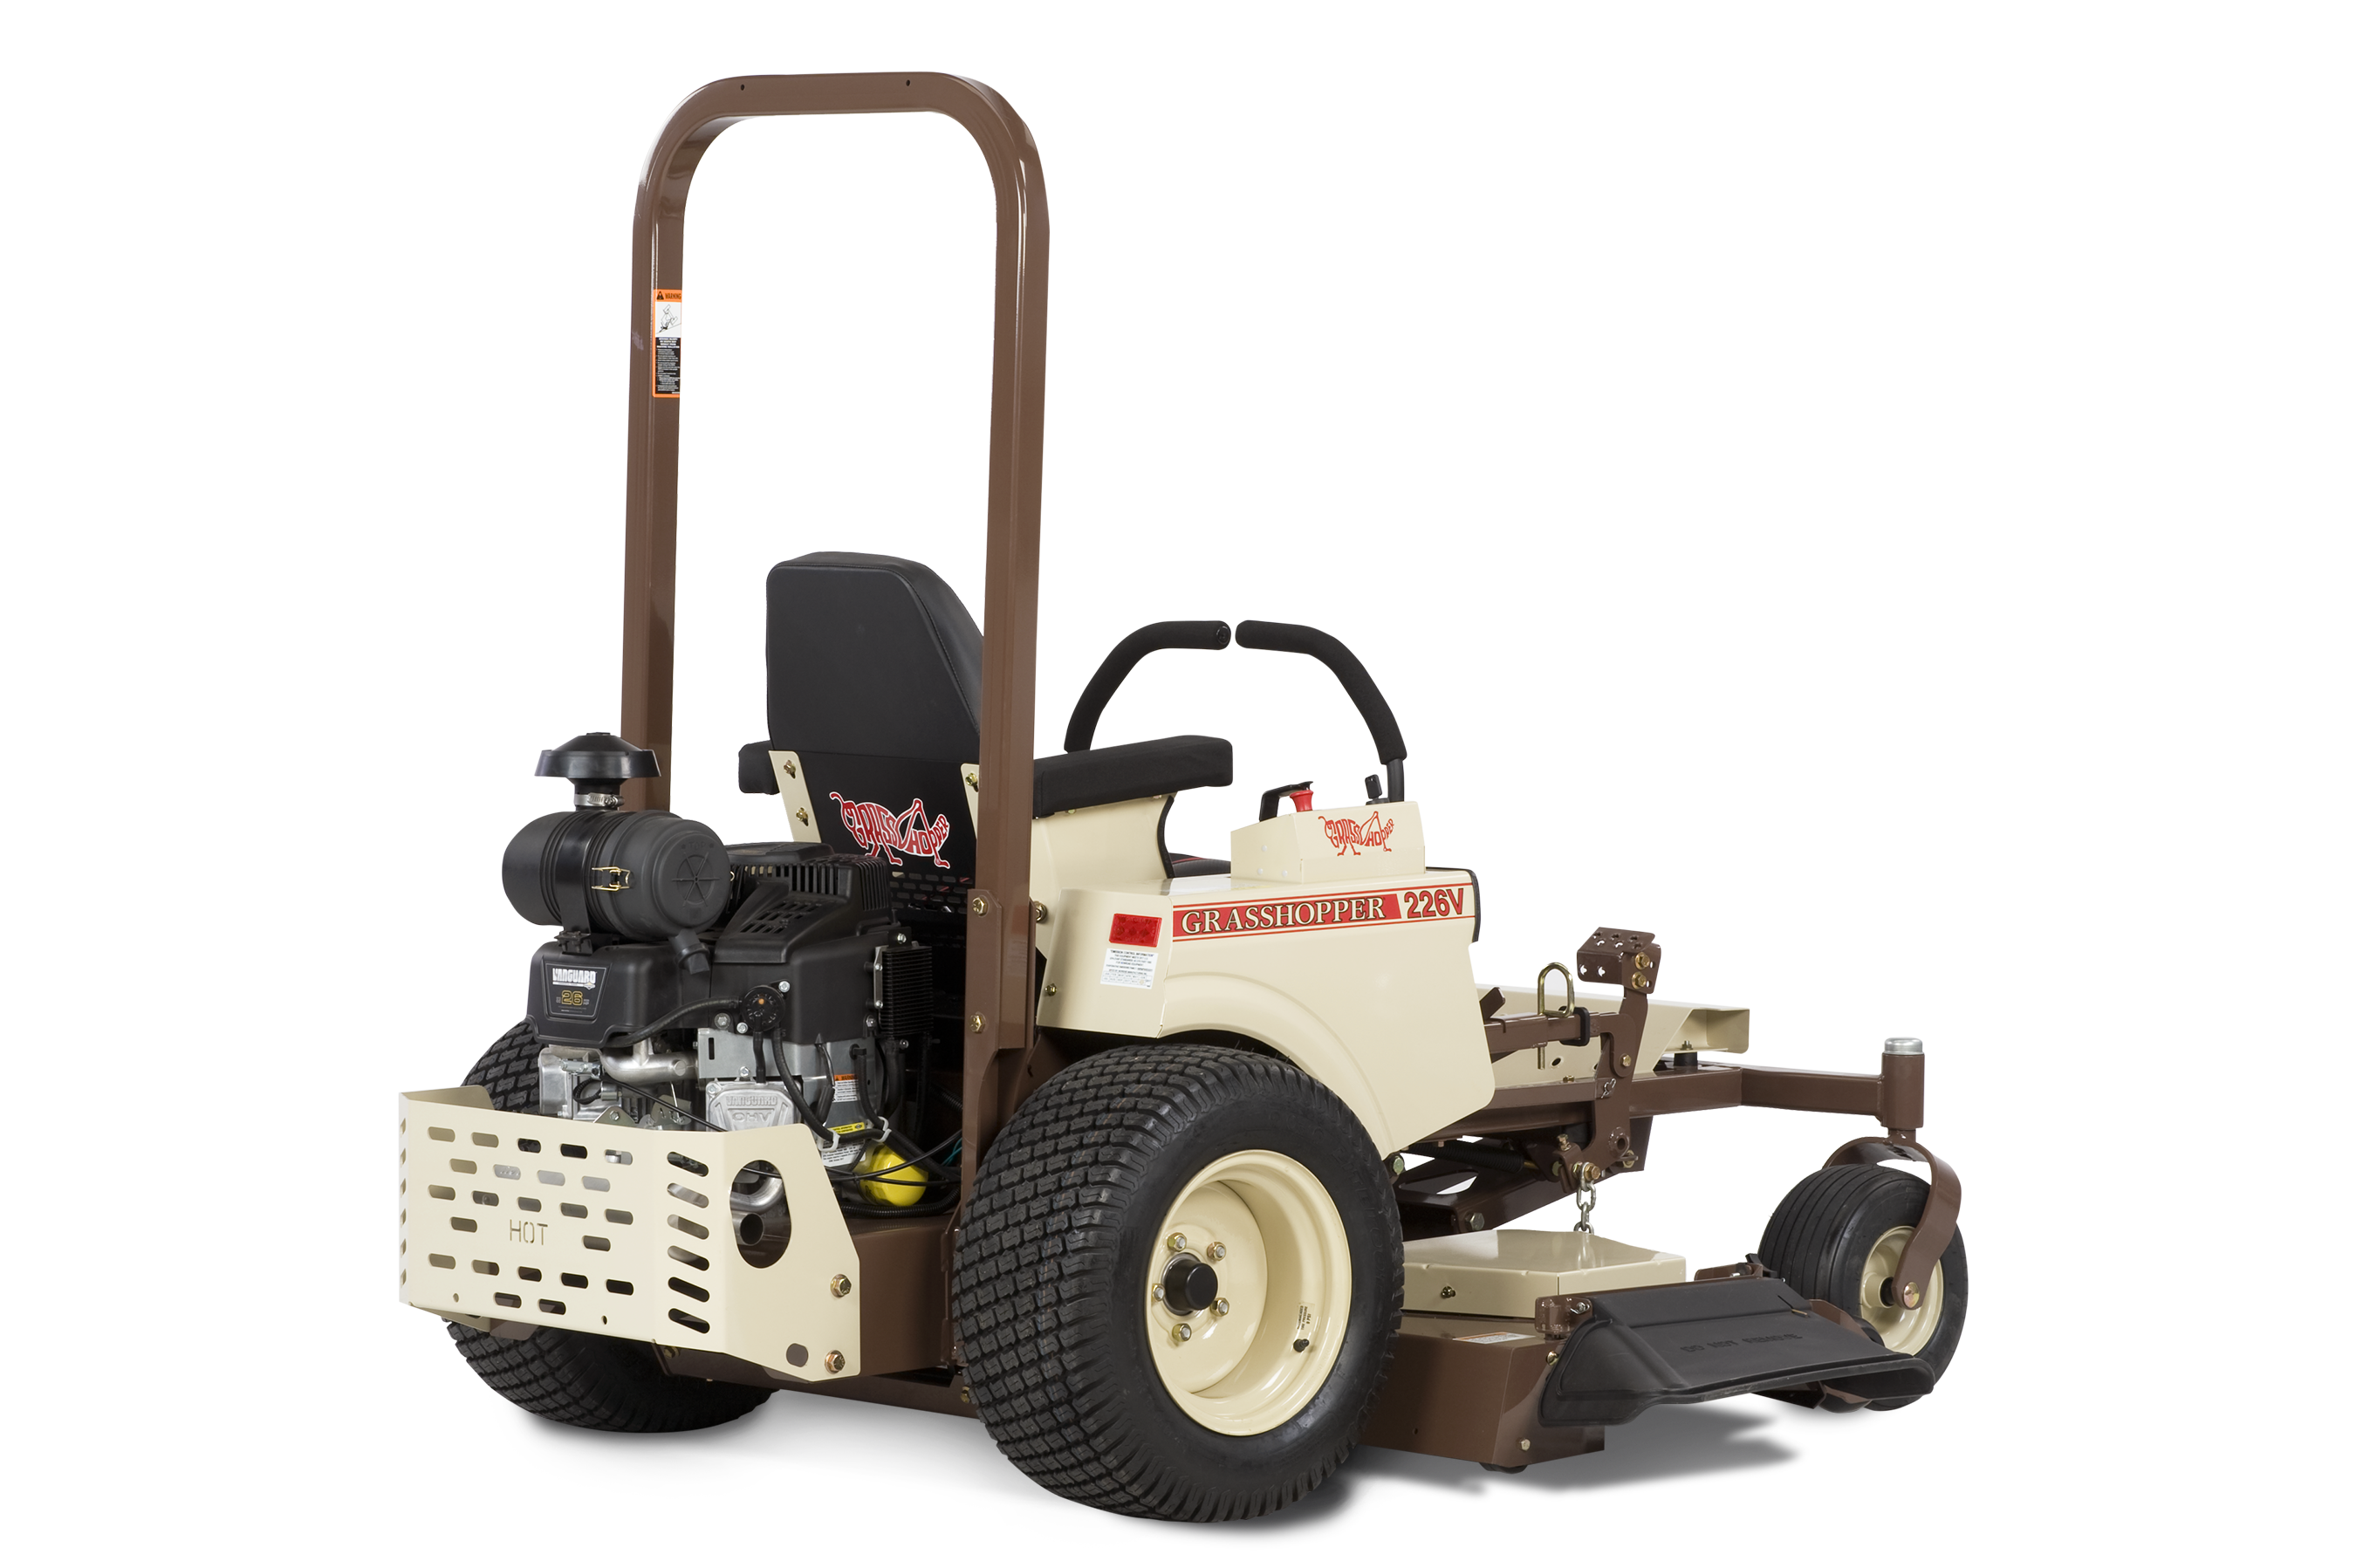 226V-G4 Dependable Zero-Turn Lawn Mower for Sale in Parsons